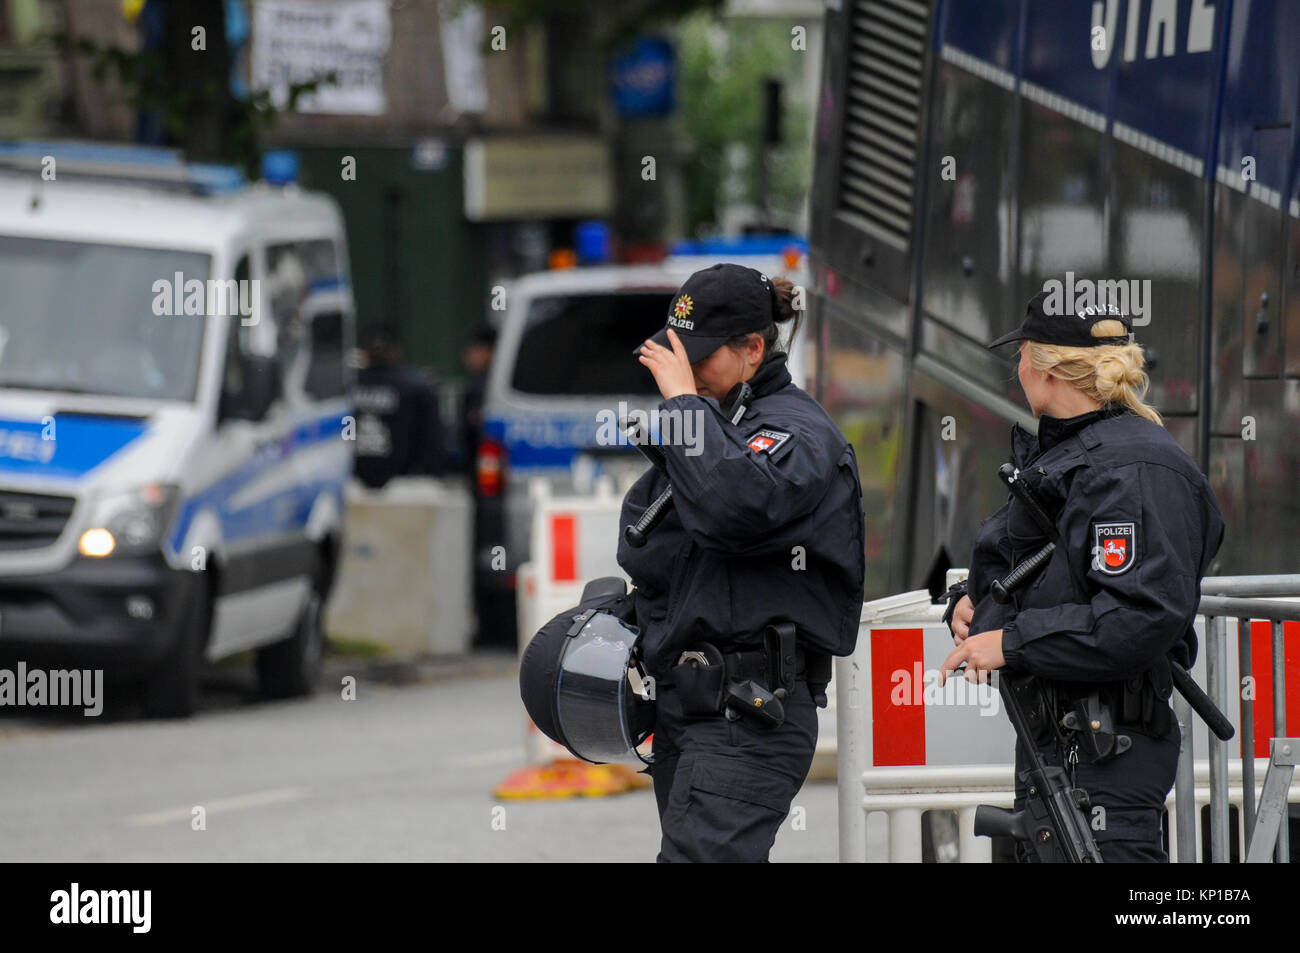 G20 summit: Riot police stands guard at 'orange' sector checkpoint, Hamburg, Germany - Stock Image